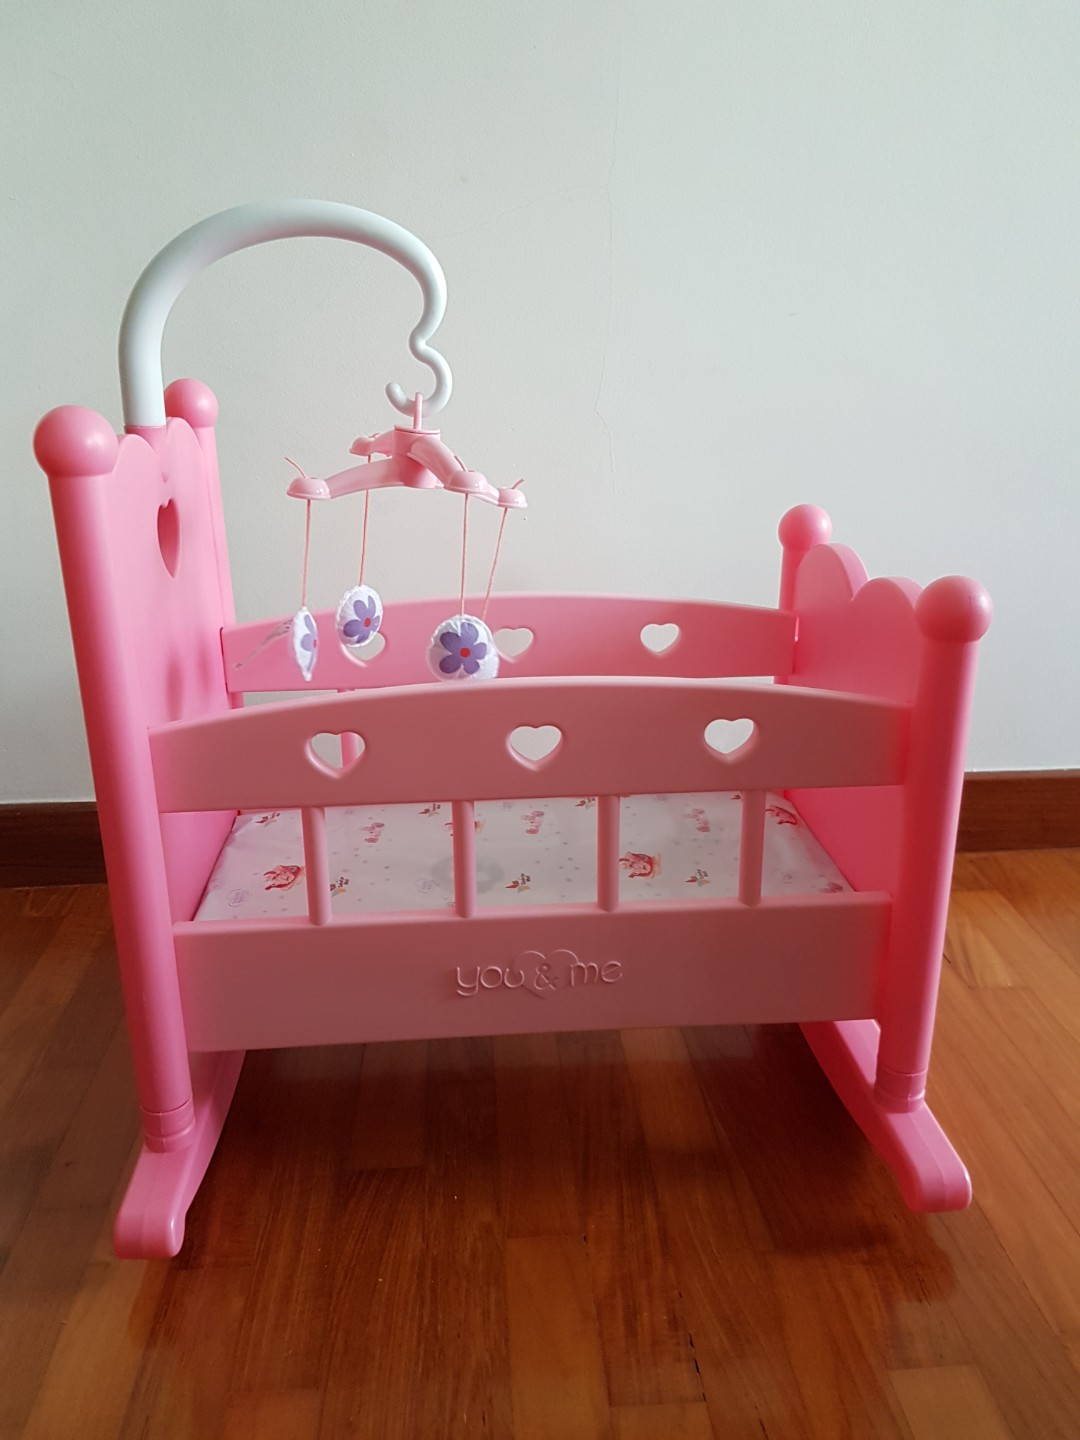 Toy Baby Crib Babies Kids Toys Walkers On Carousell